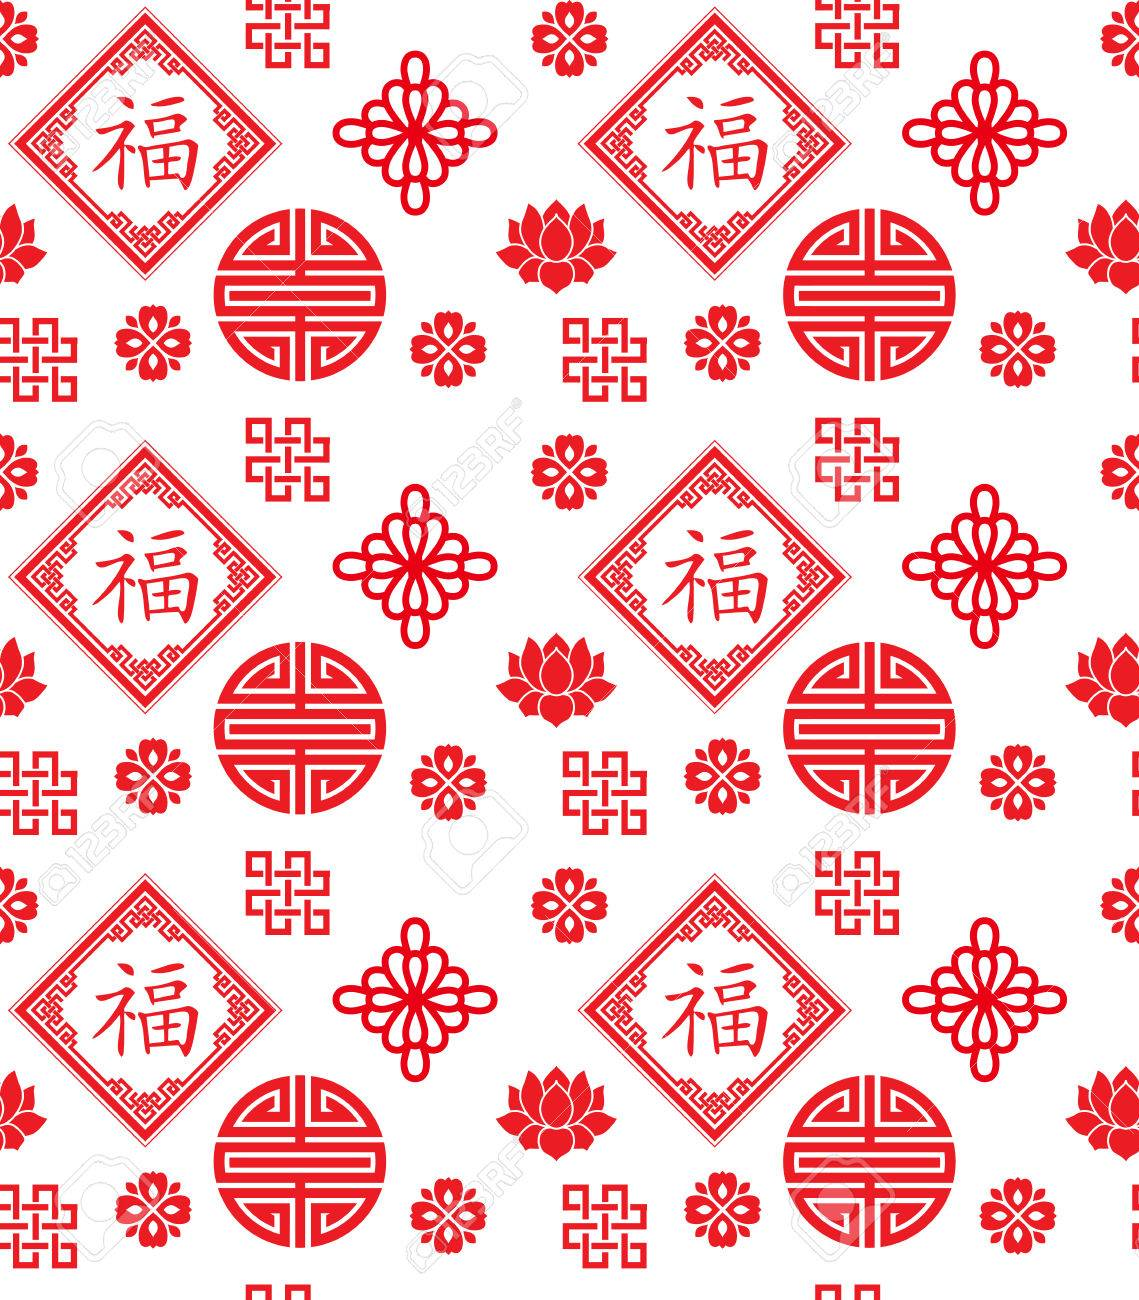 chinese new year traditional elements red and white seamless pattern with the character for happiness stock - Chinese New Year Traditions